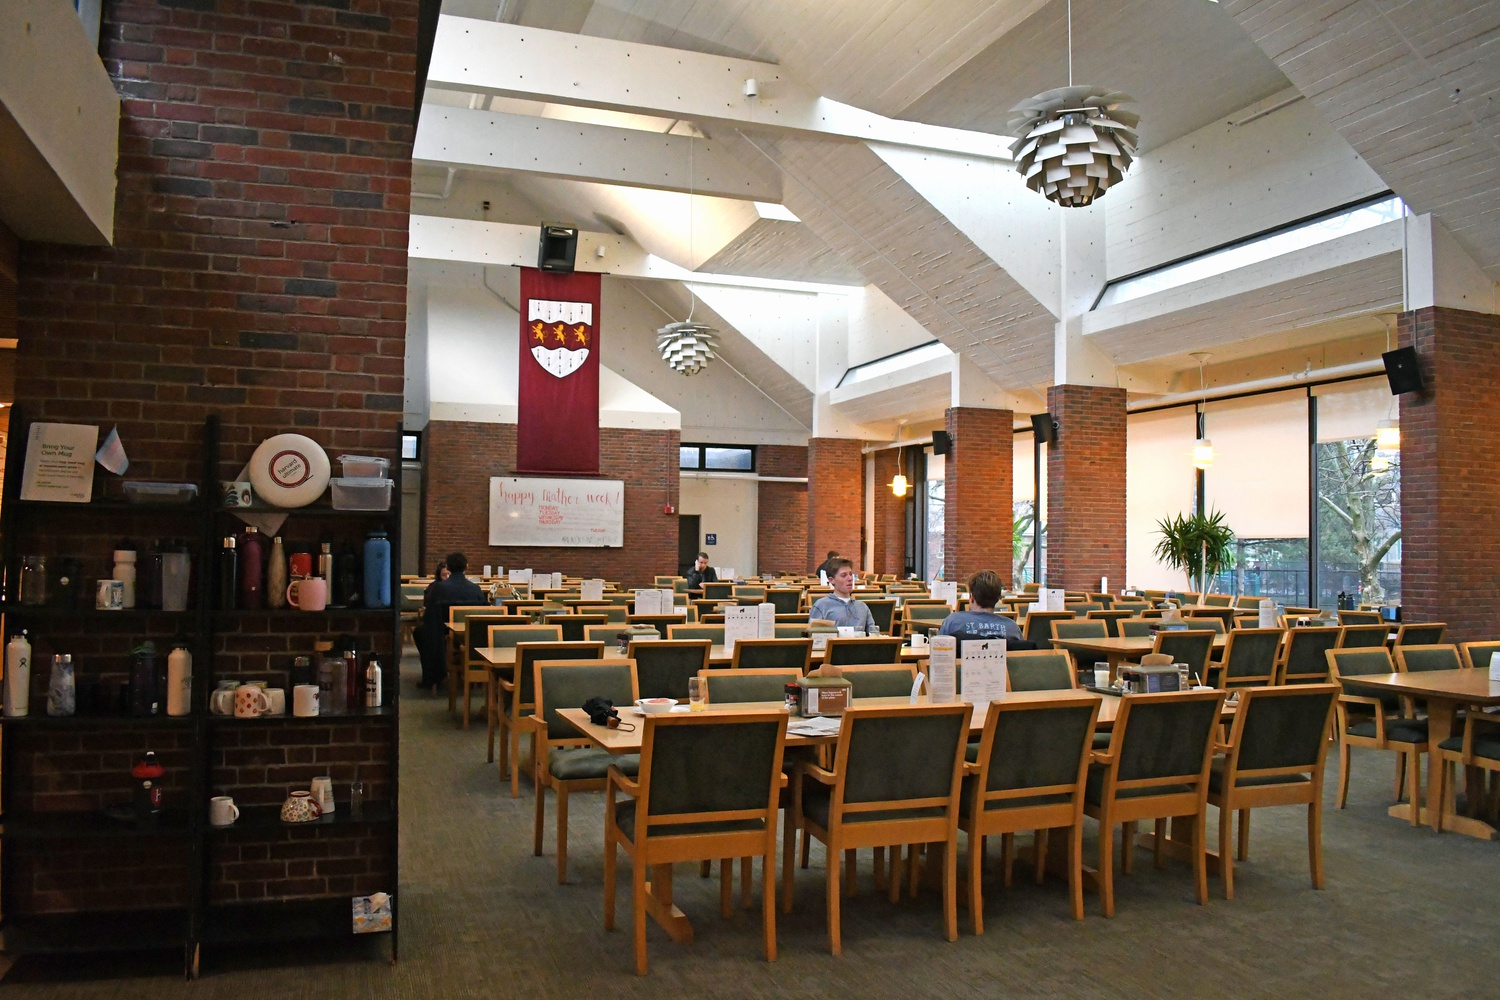 During the last few days on campus in March 2020, Mather Dining Hall was mostly empty, as house life declined while students experienced their final moments on campus.